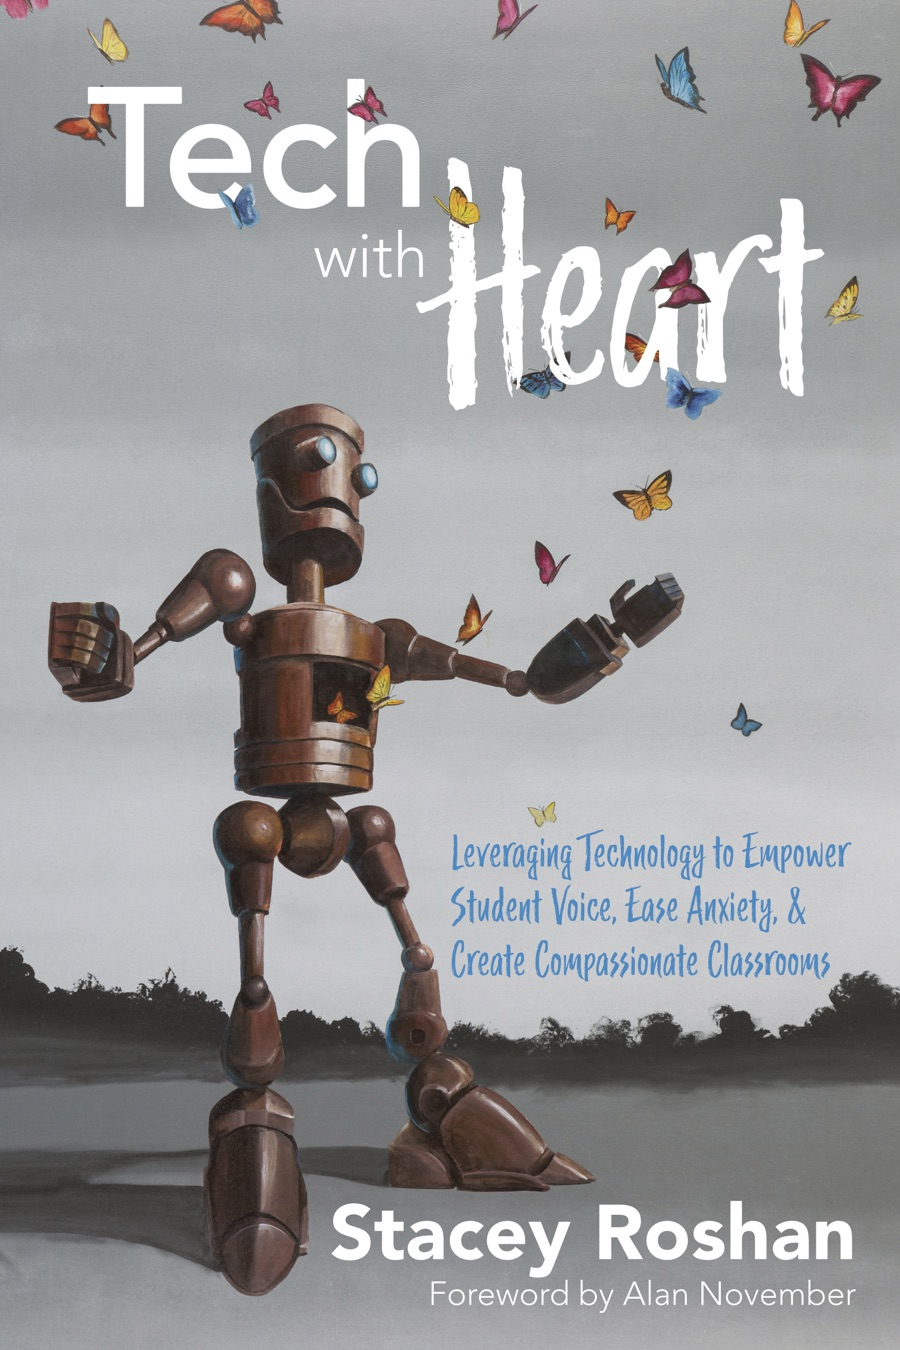 Tech with Heart by Stacey Roshan